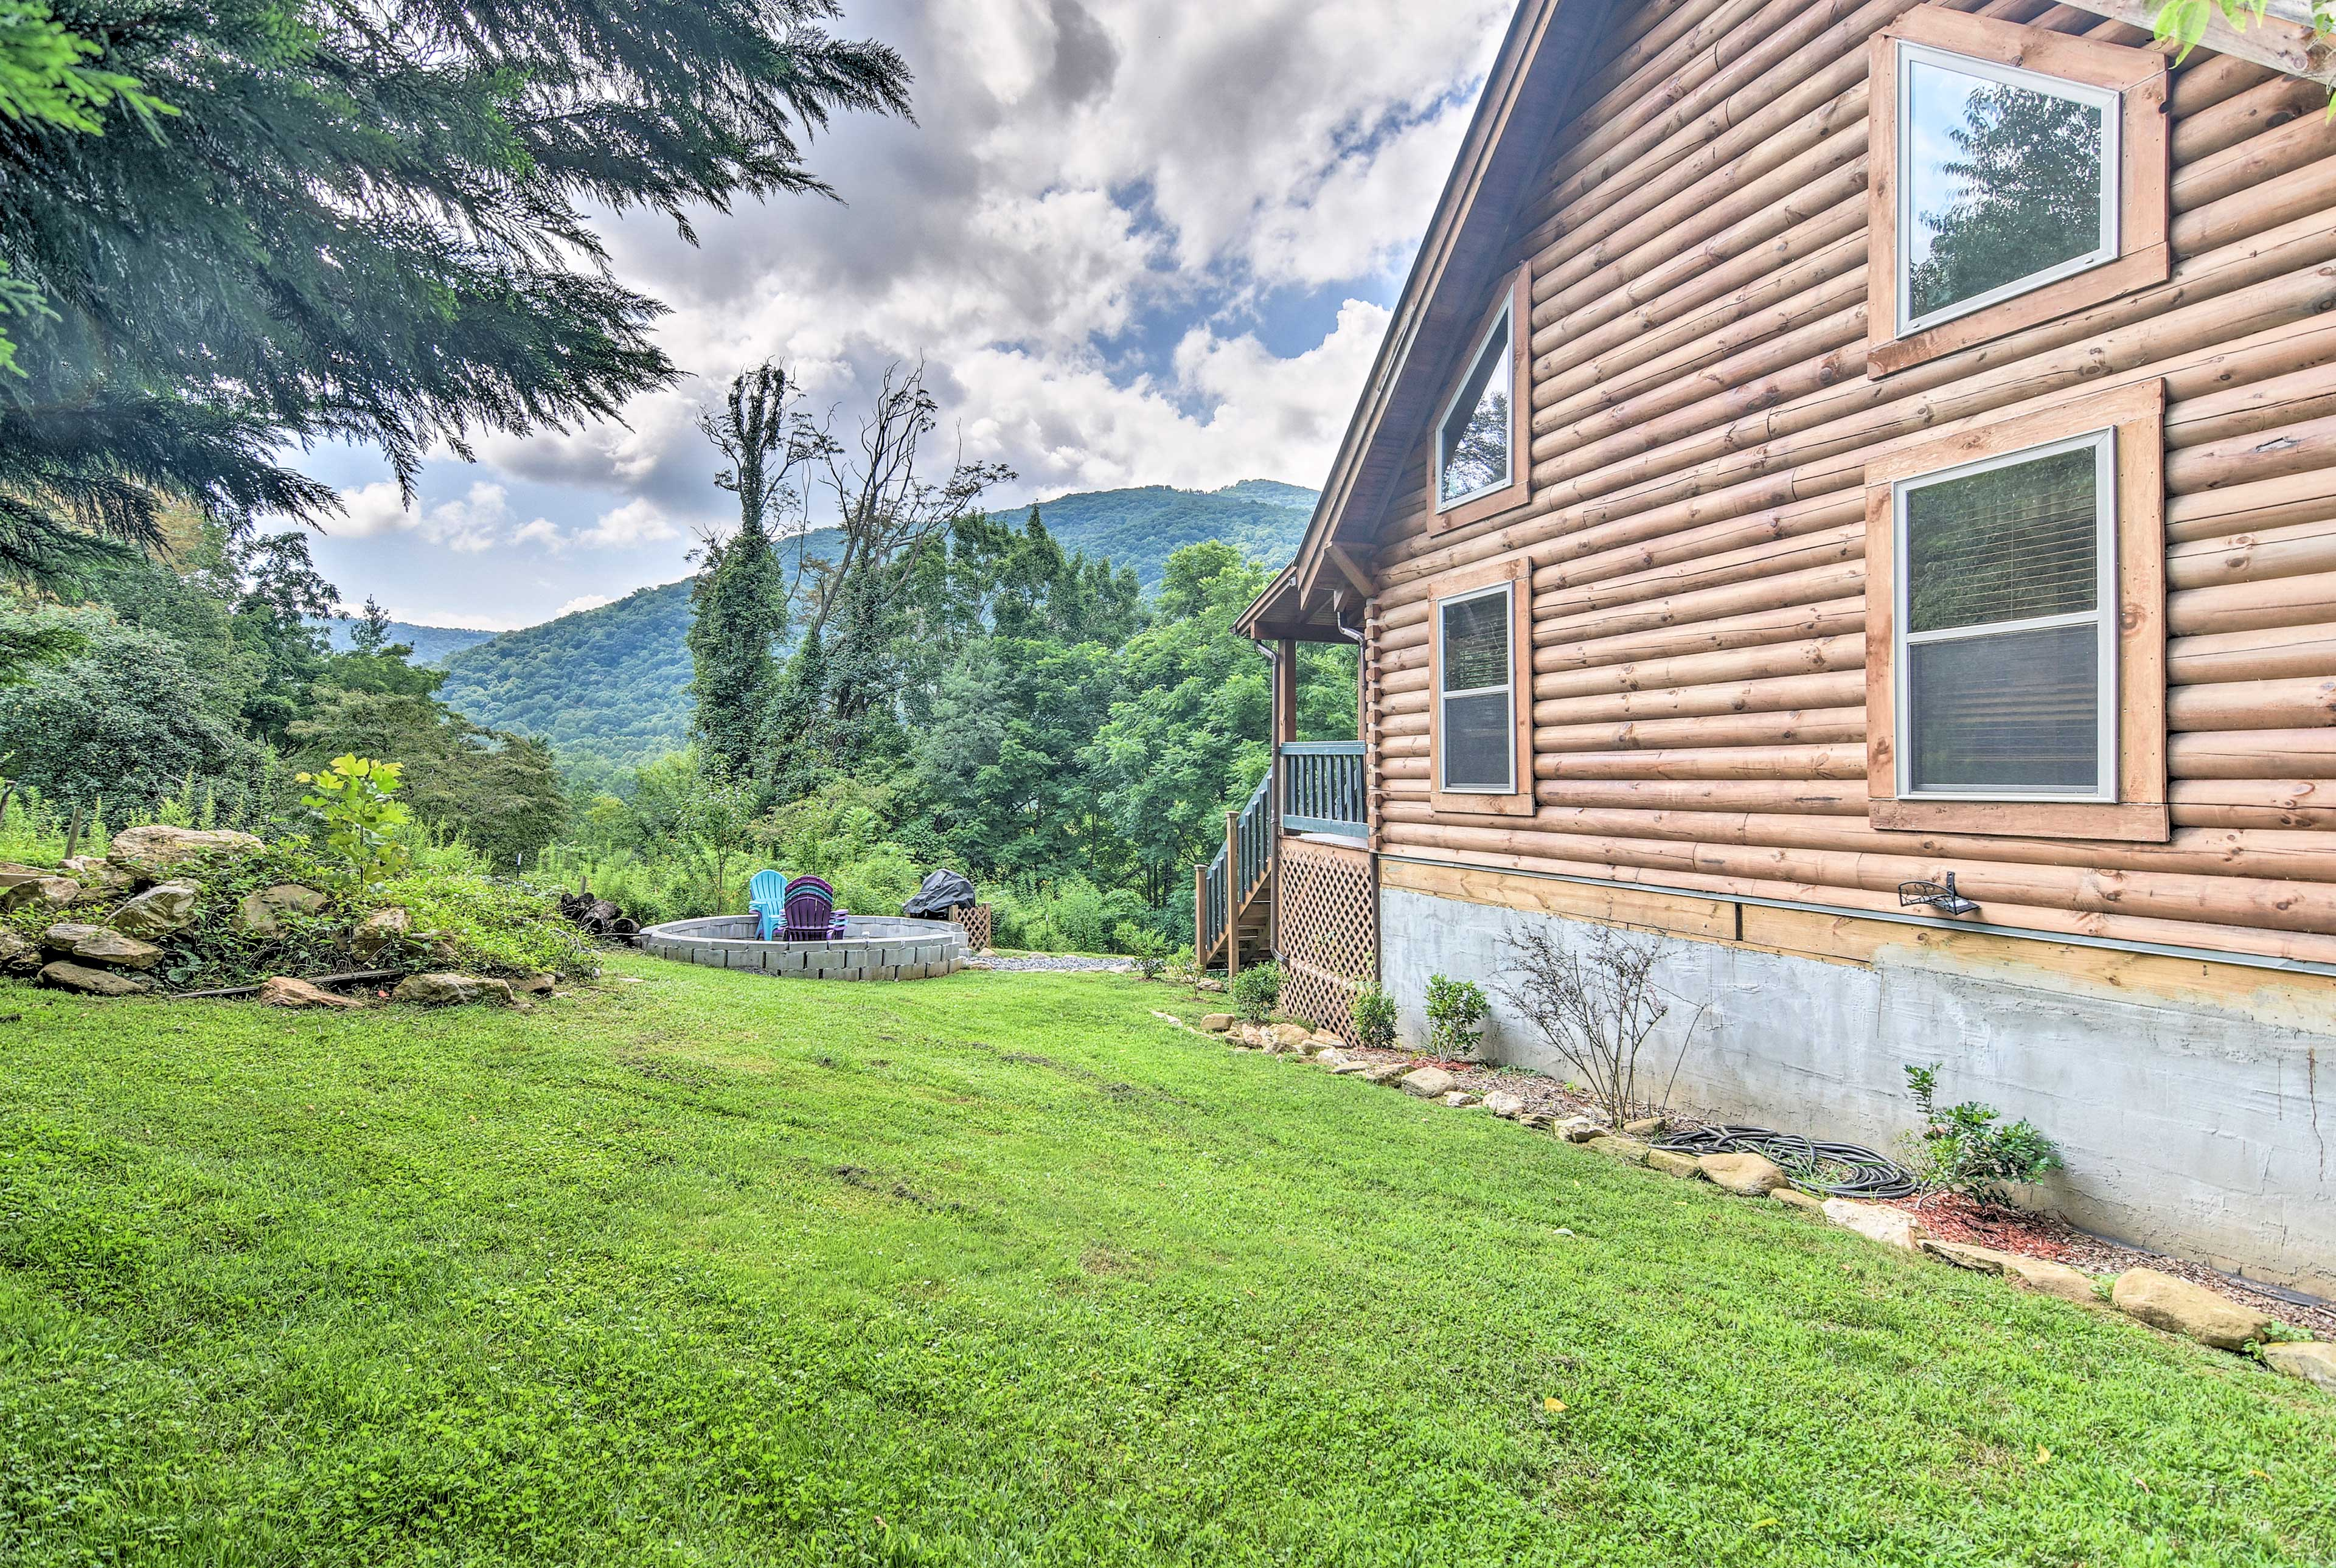 This Maggie Valley home is near breweries, restaurants, hiking trails, and more!